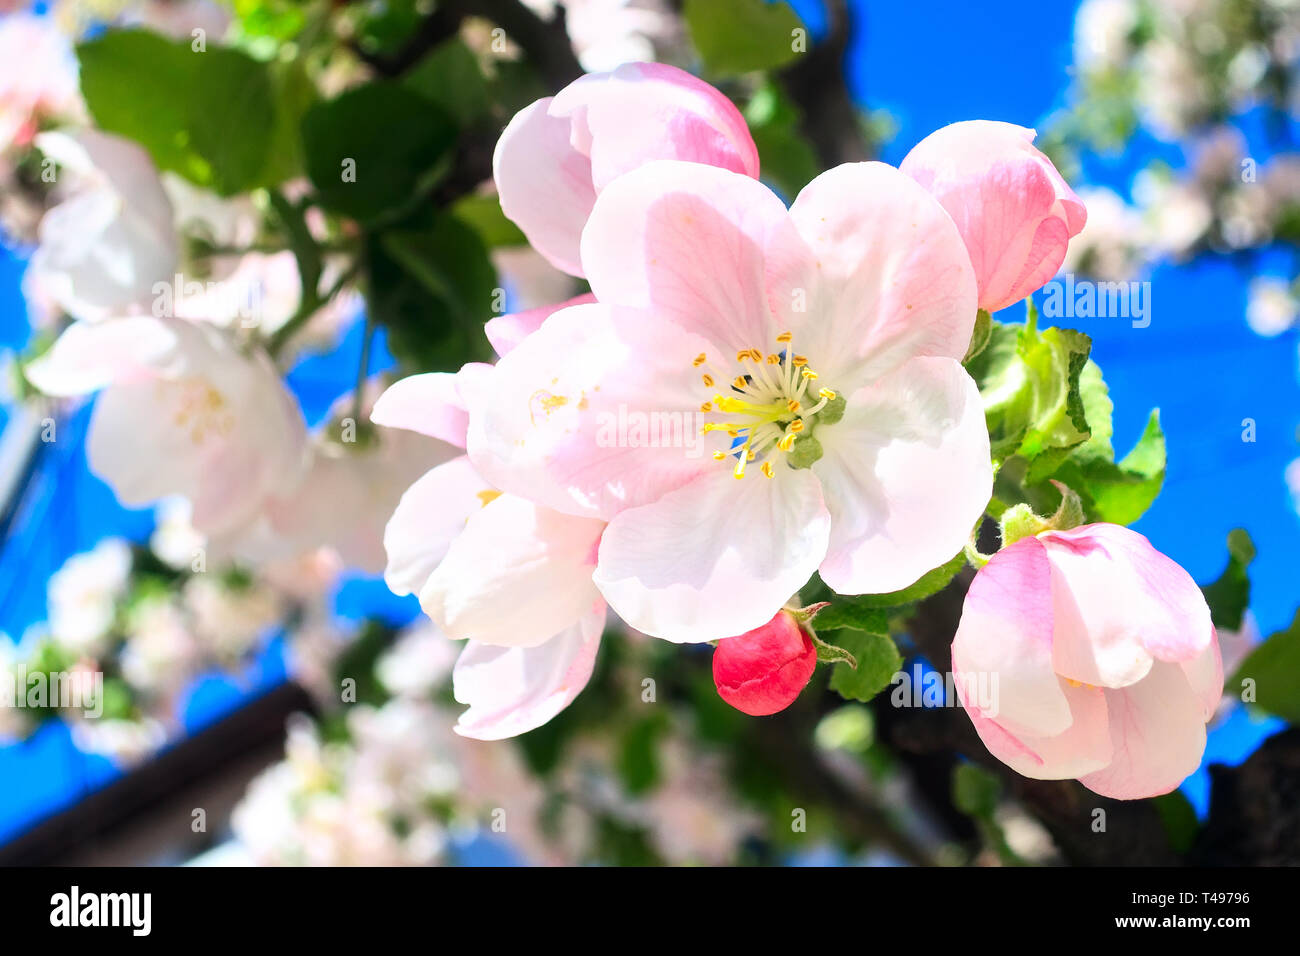 The branch of white and pink apple flower blossom spring background, close-up macro Stock Photo